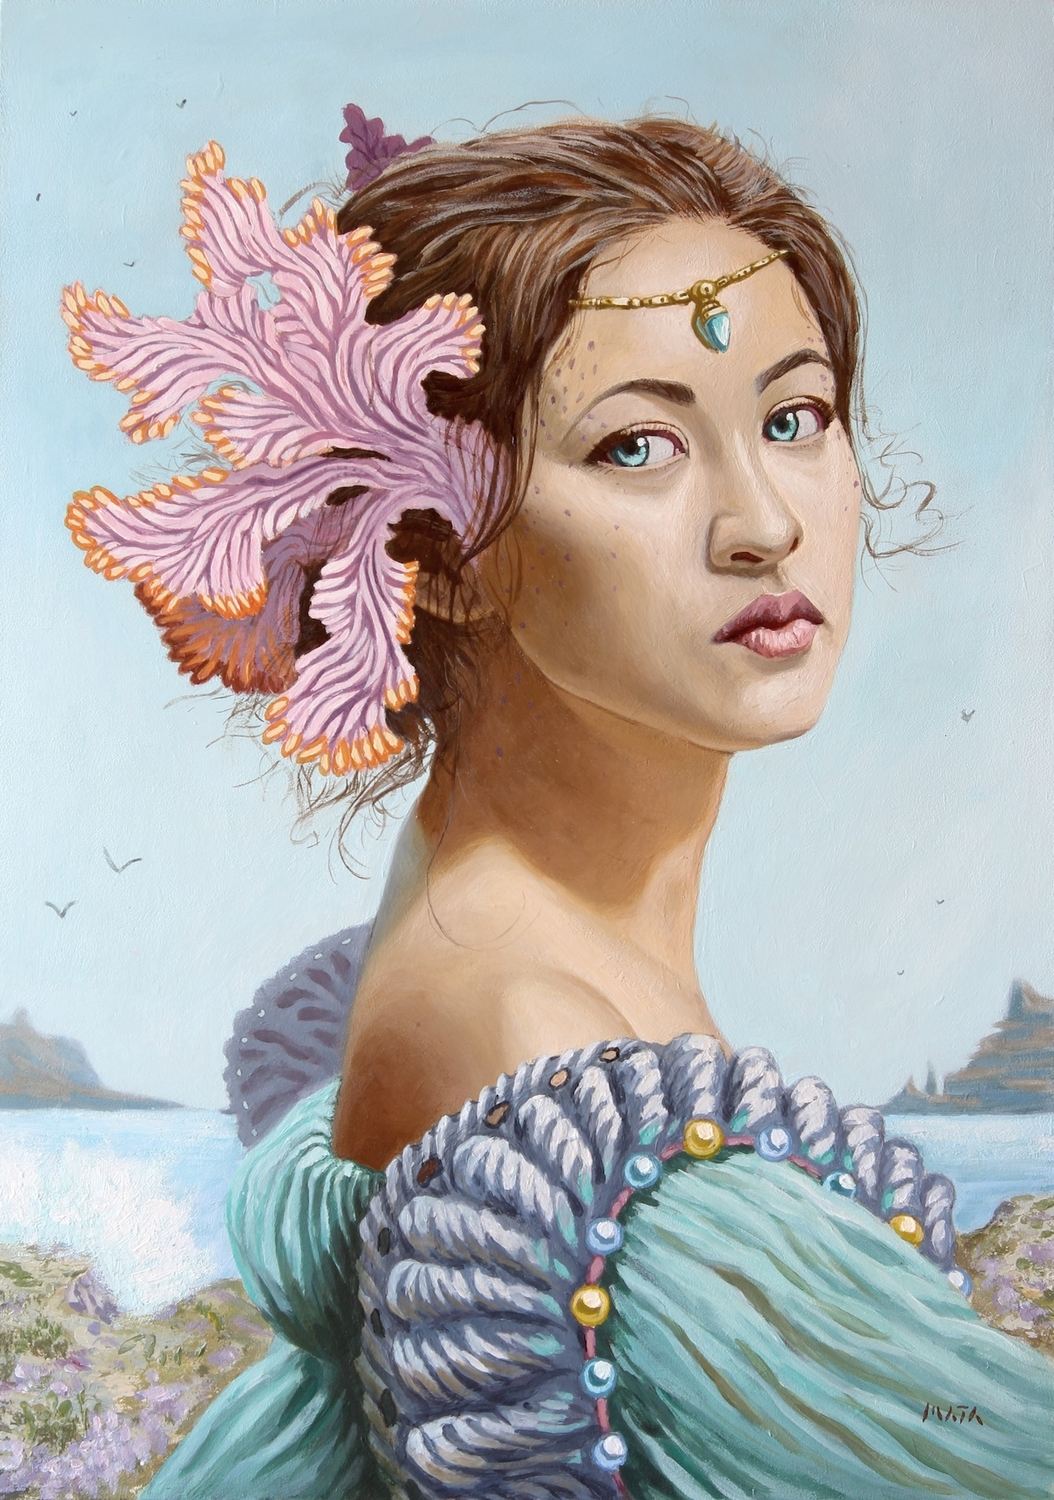 Lady of the Sea Artwork by André Mata